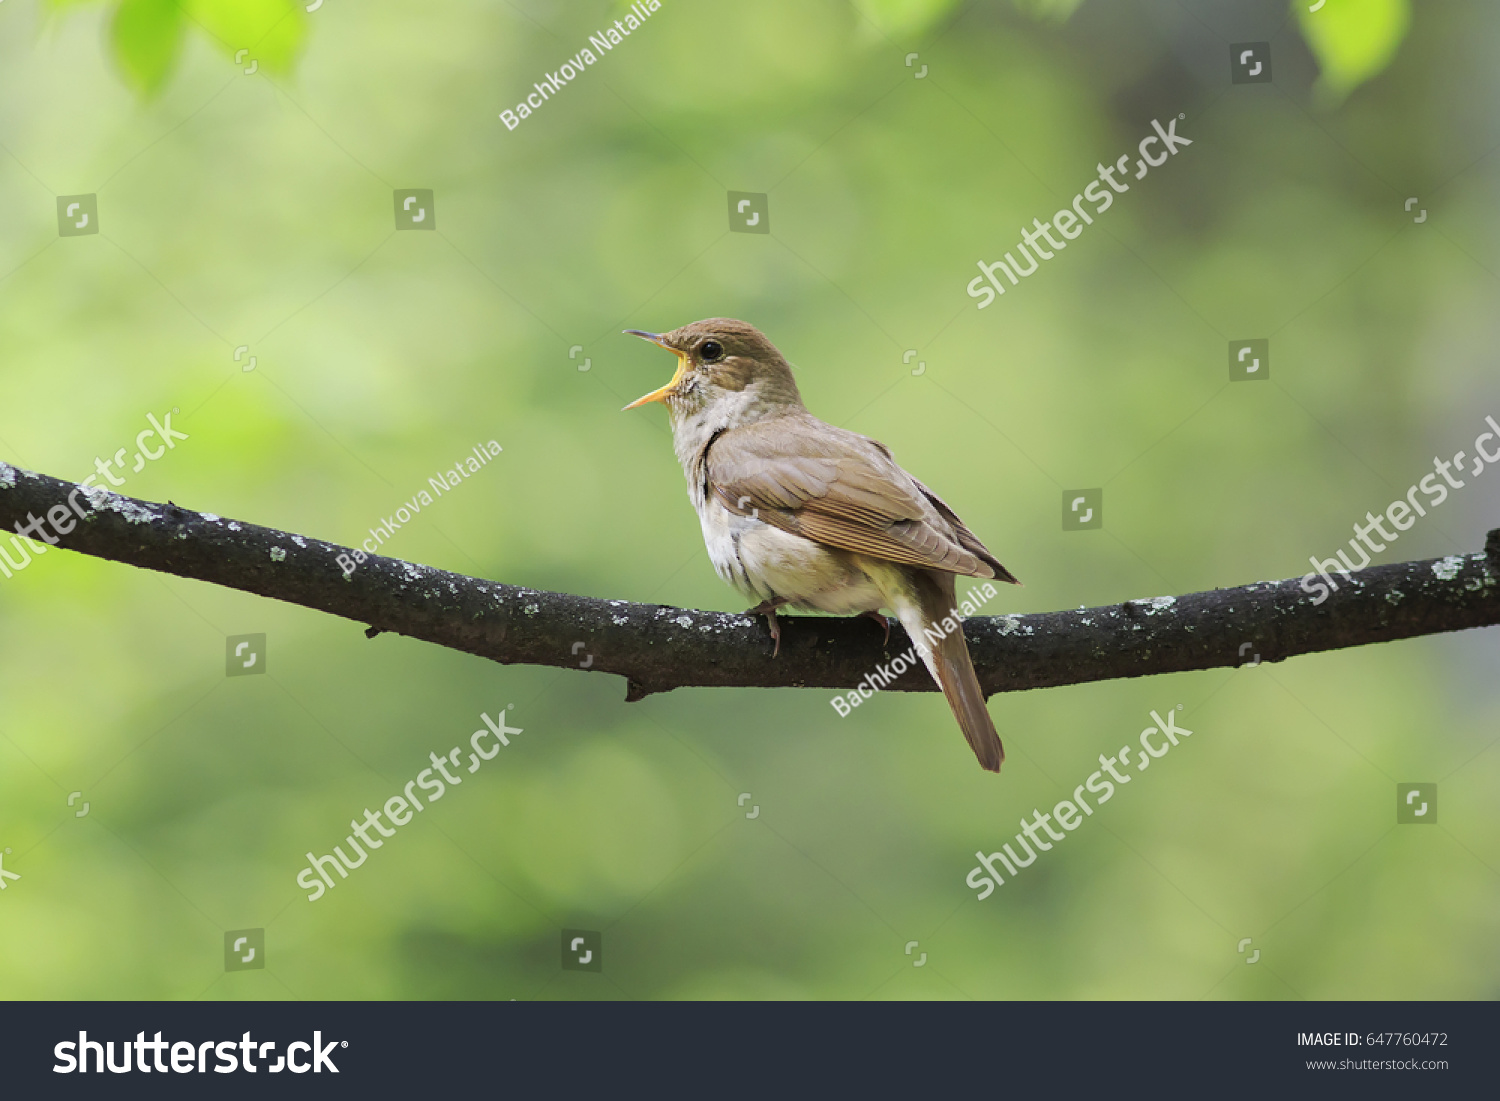 The Nightingale Sings Loud Song On A Branch In The Park On A Sunny Spring  Day Ideas